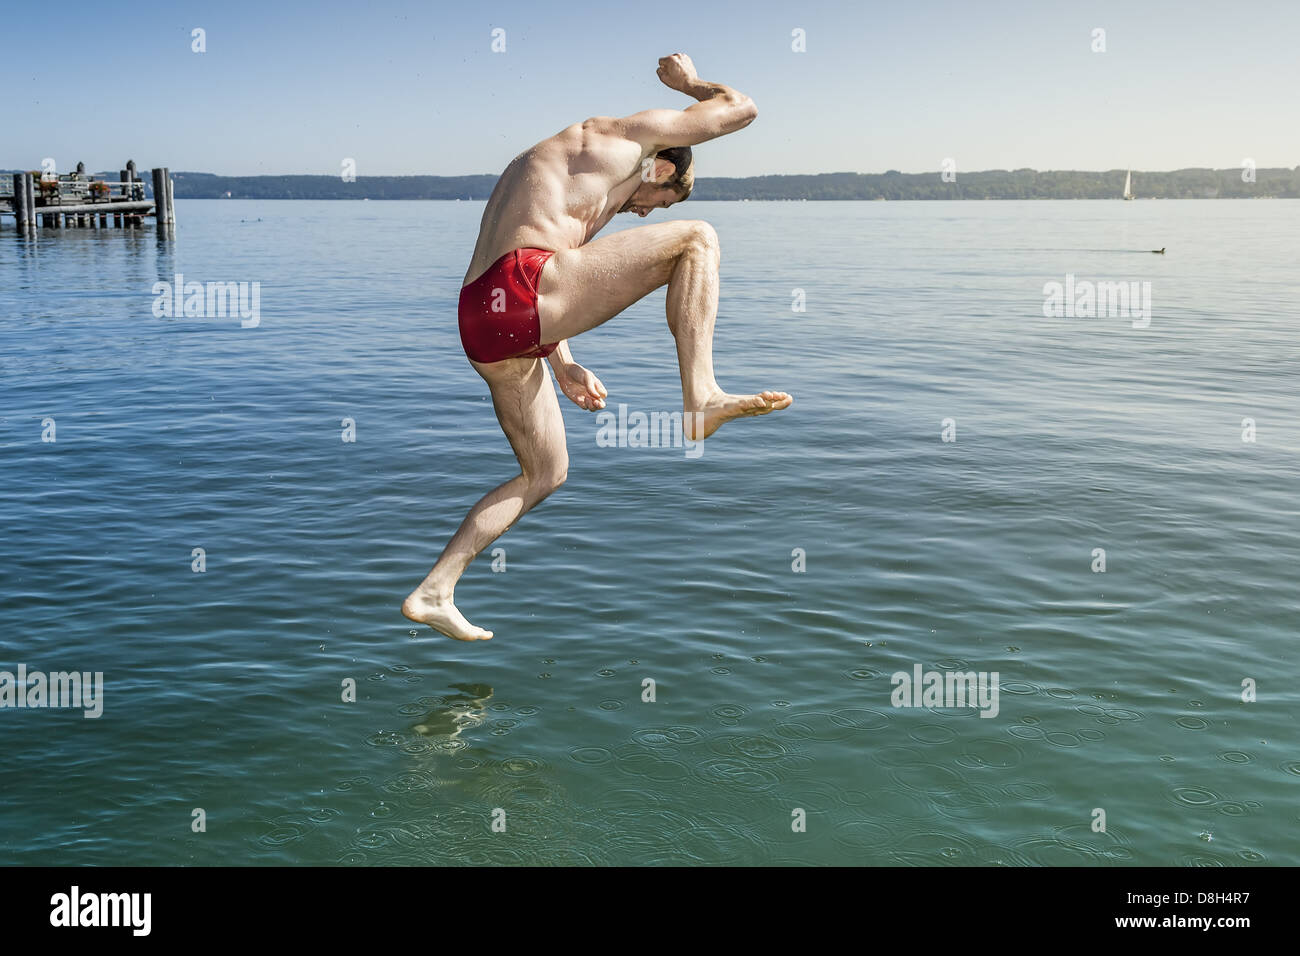 jumping into the water Stock Photo: 56925323 - Alamy